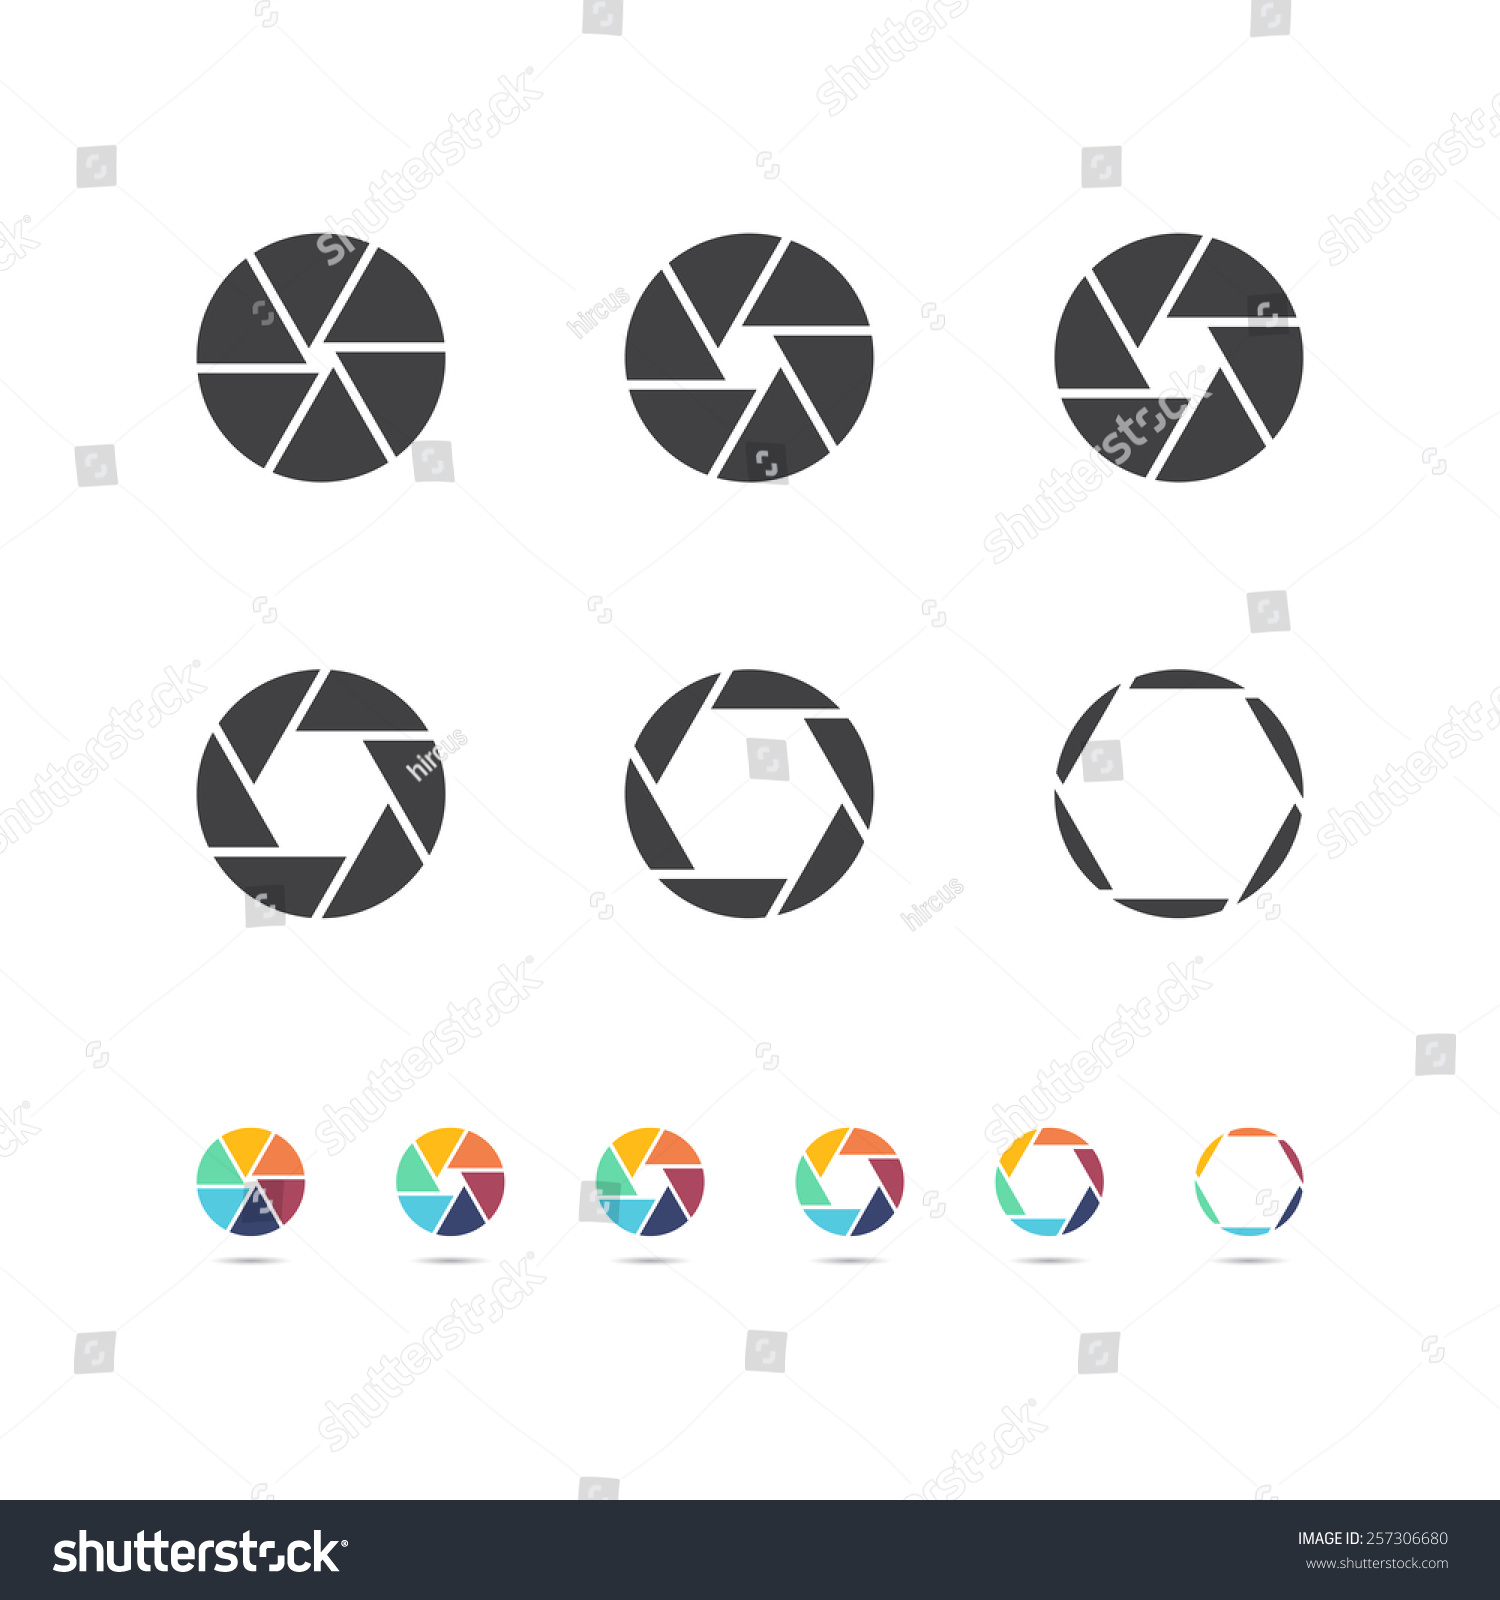 Camera Focus Objective Icon Stock Vector 257306680 - Shutterstock